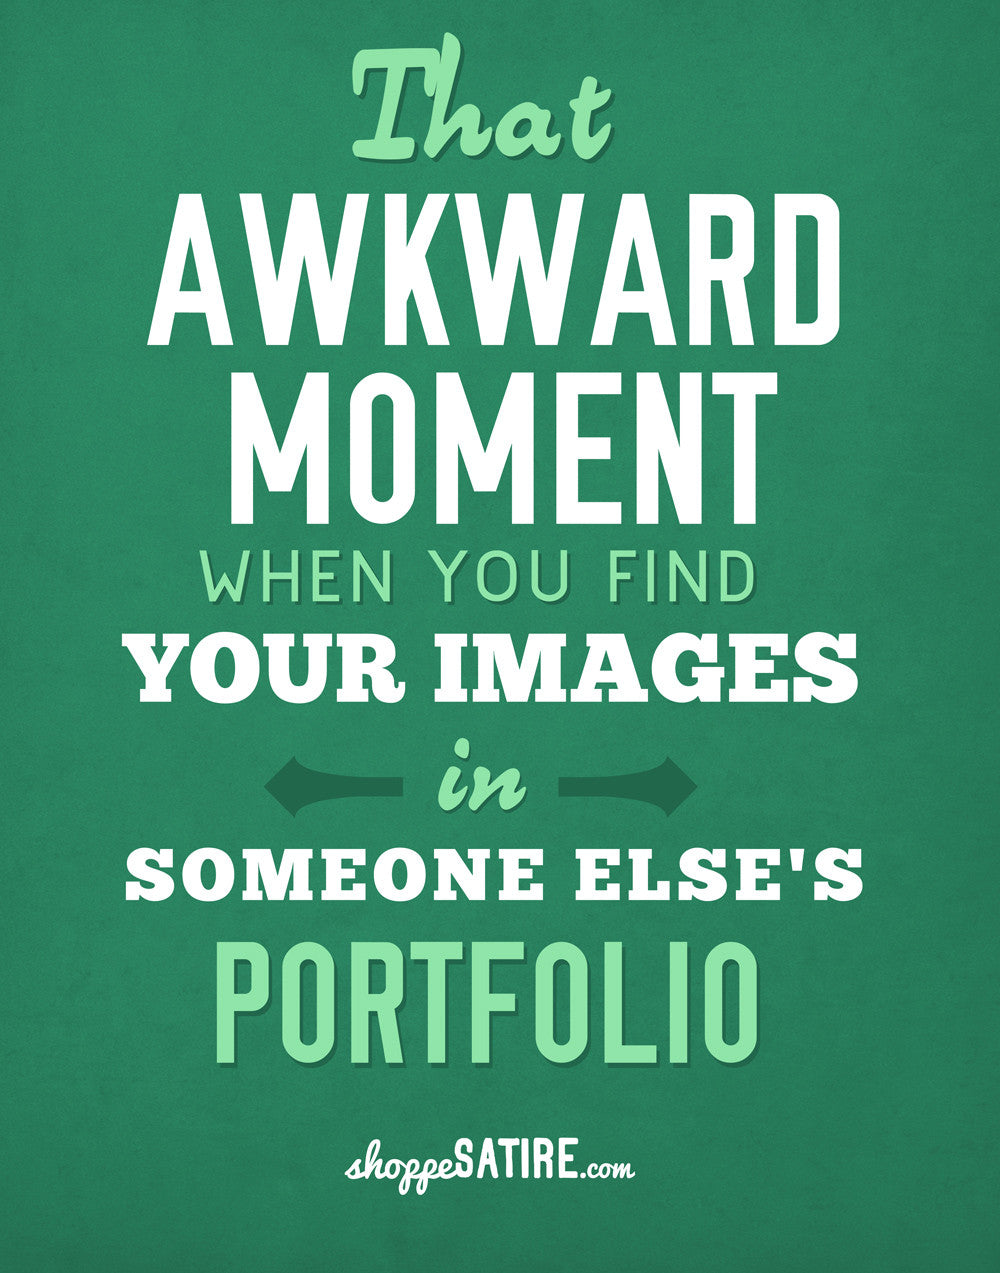 Shoppe Satire Printables ~ Awkward Moment